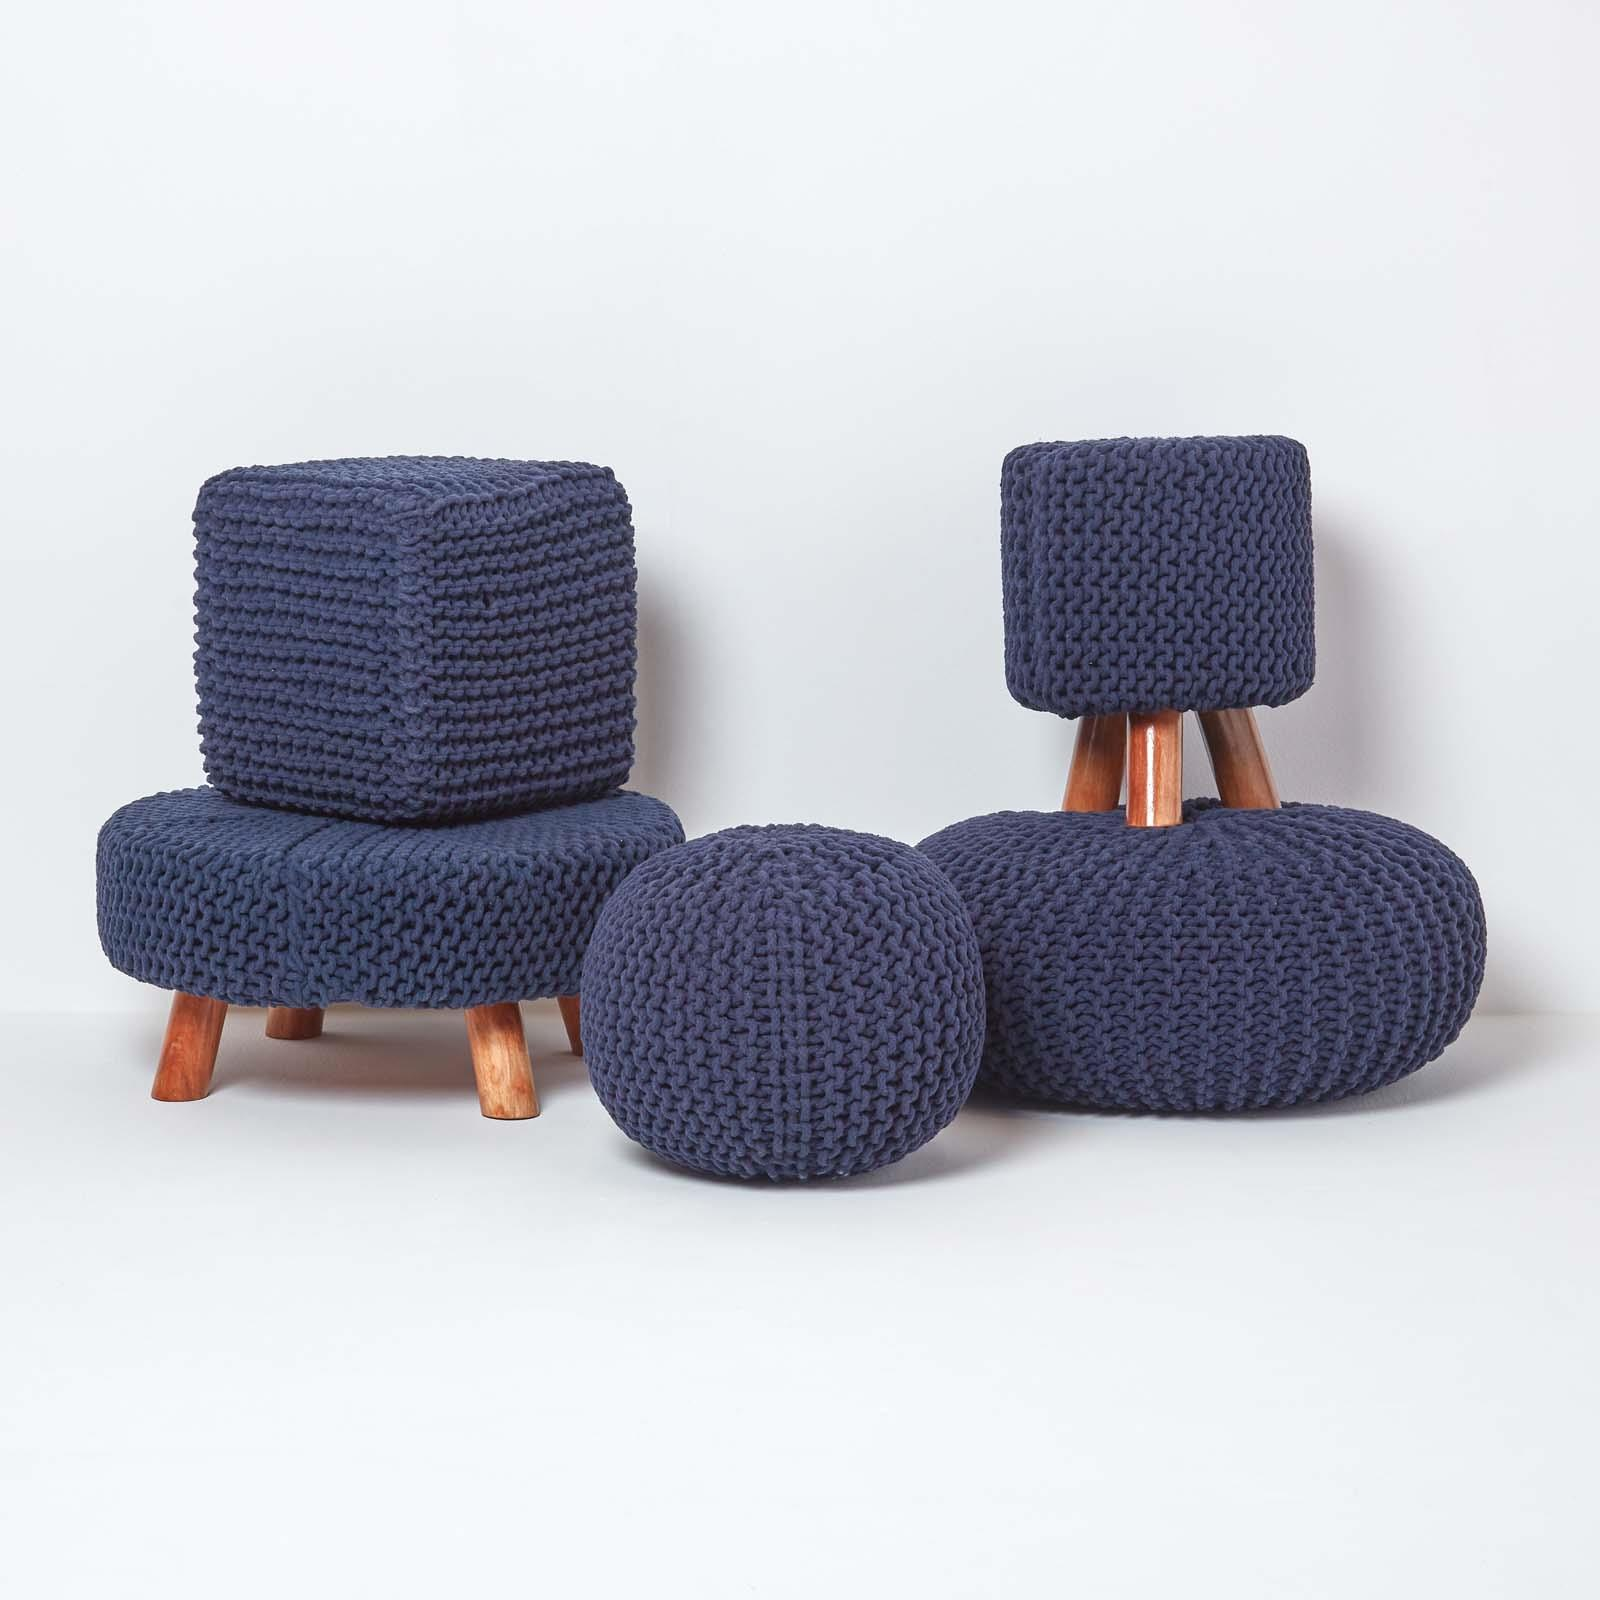 Hand-Knitted-100-Cotton-Pouffes-Round-Sphere-Or-Cube-Square-Chunky-Footstools thumbnail 113